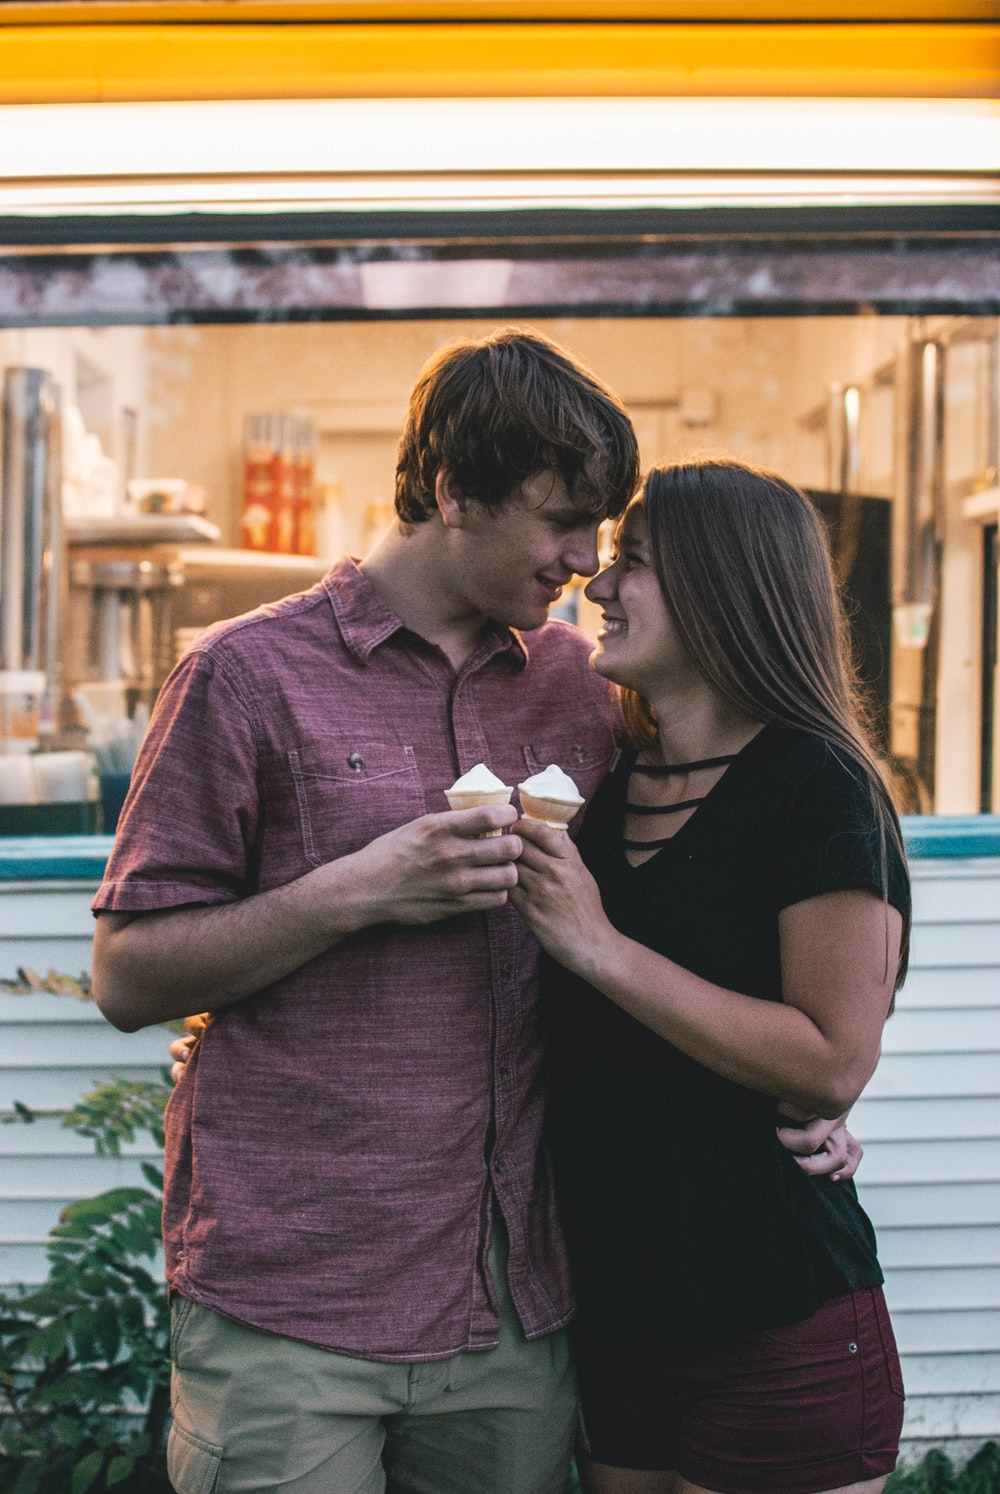 man hugging woman while holding ice cream